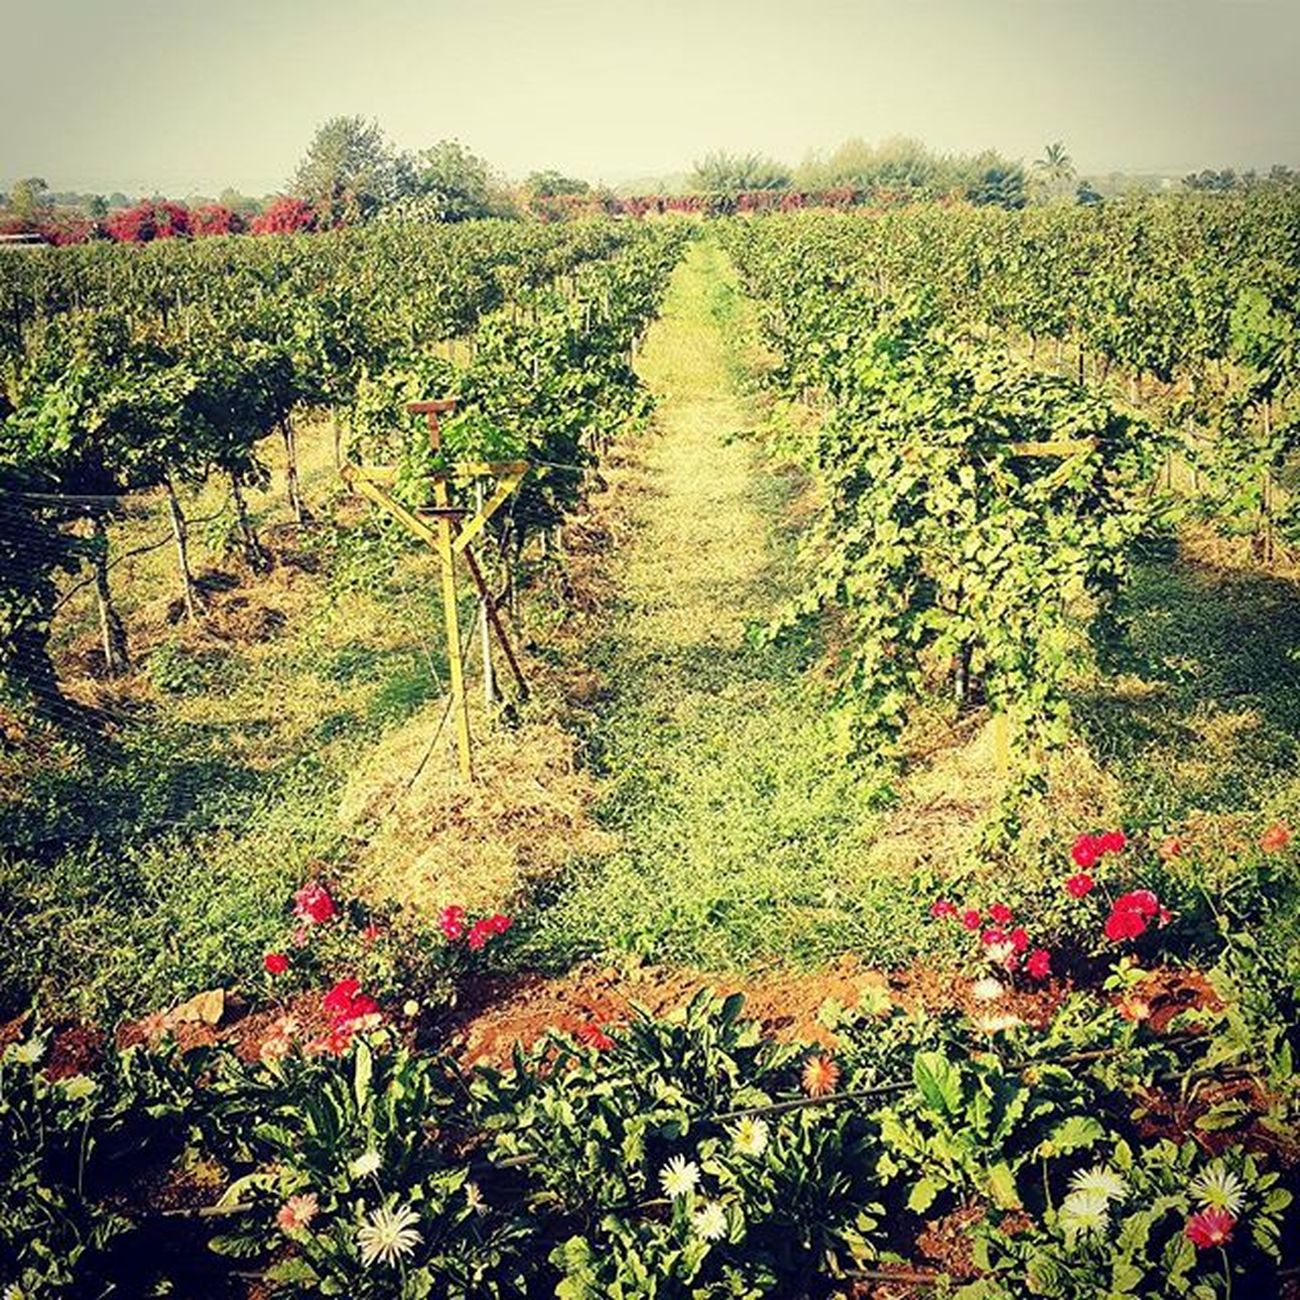 First visit to a vineyard 🍇🍇 Vscocam VSCO Vscoartist Vscogrid Vscogram India_gram Indiapictures Mumbai_igers _soi Instaclick Picoftheday Indianphotographersclub India Indiatravelgram Incredibleindia Streetsofindia Igersofindia Maharashtra_ig Sula Wineyard Wine Traveldiaries Travel